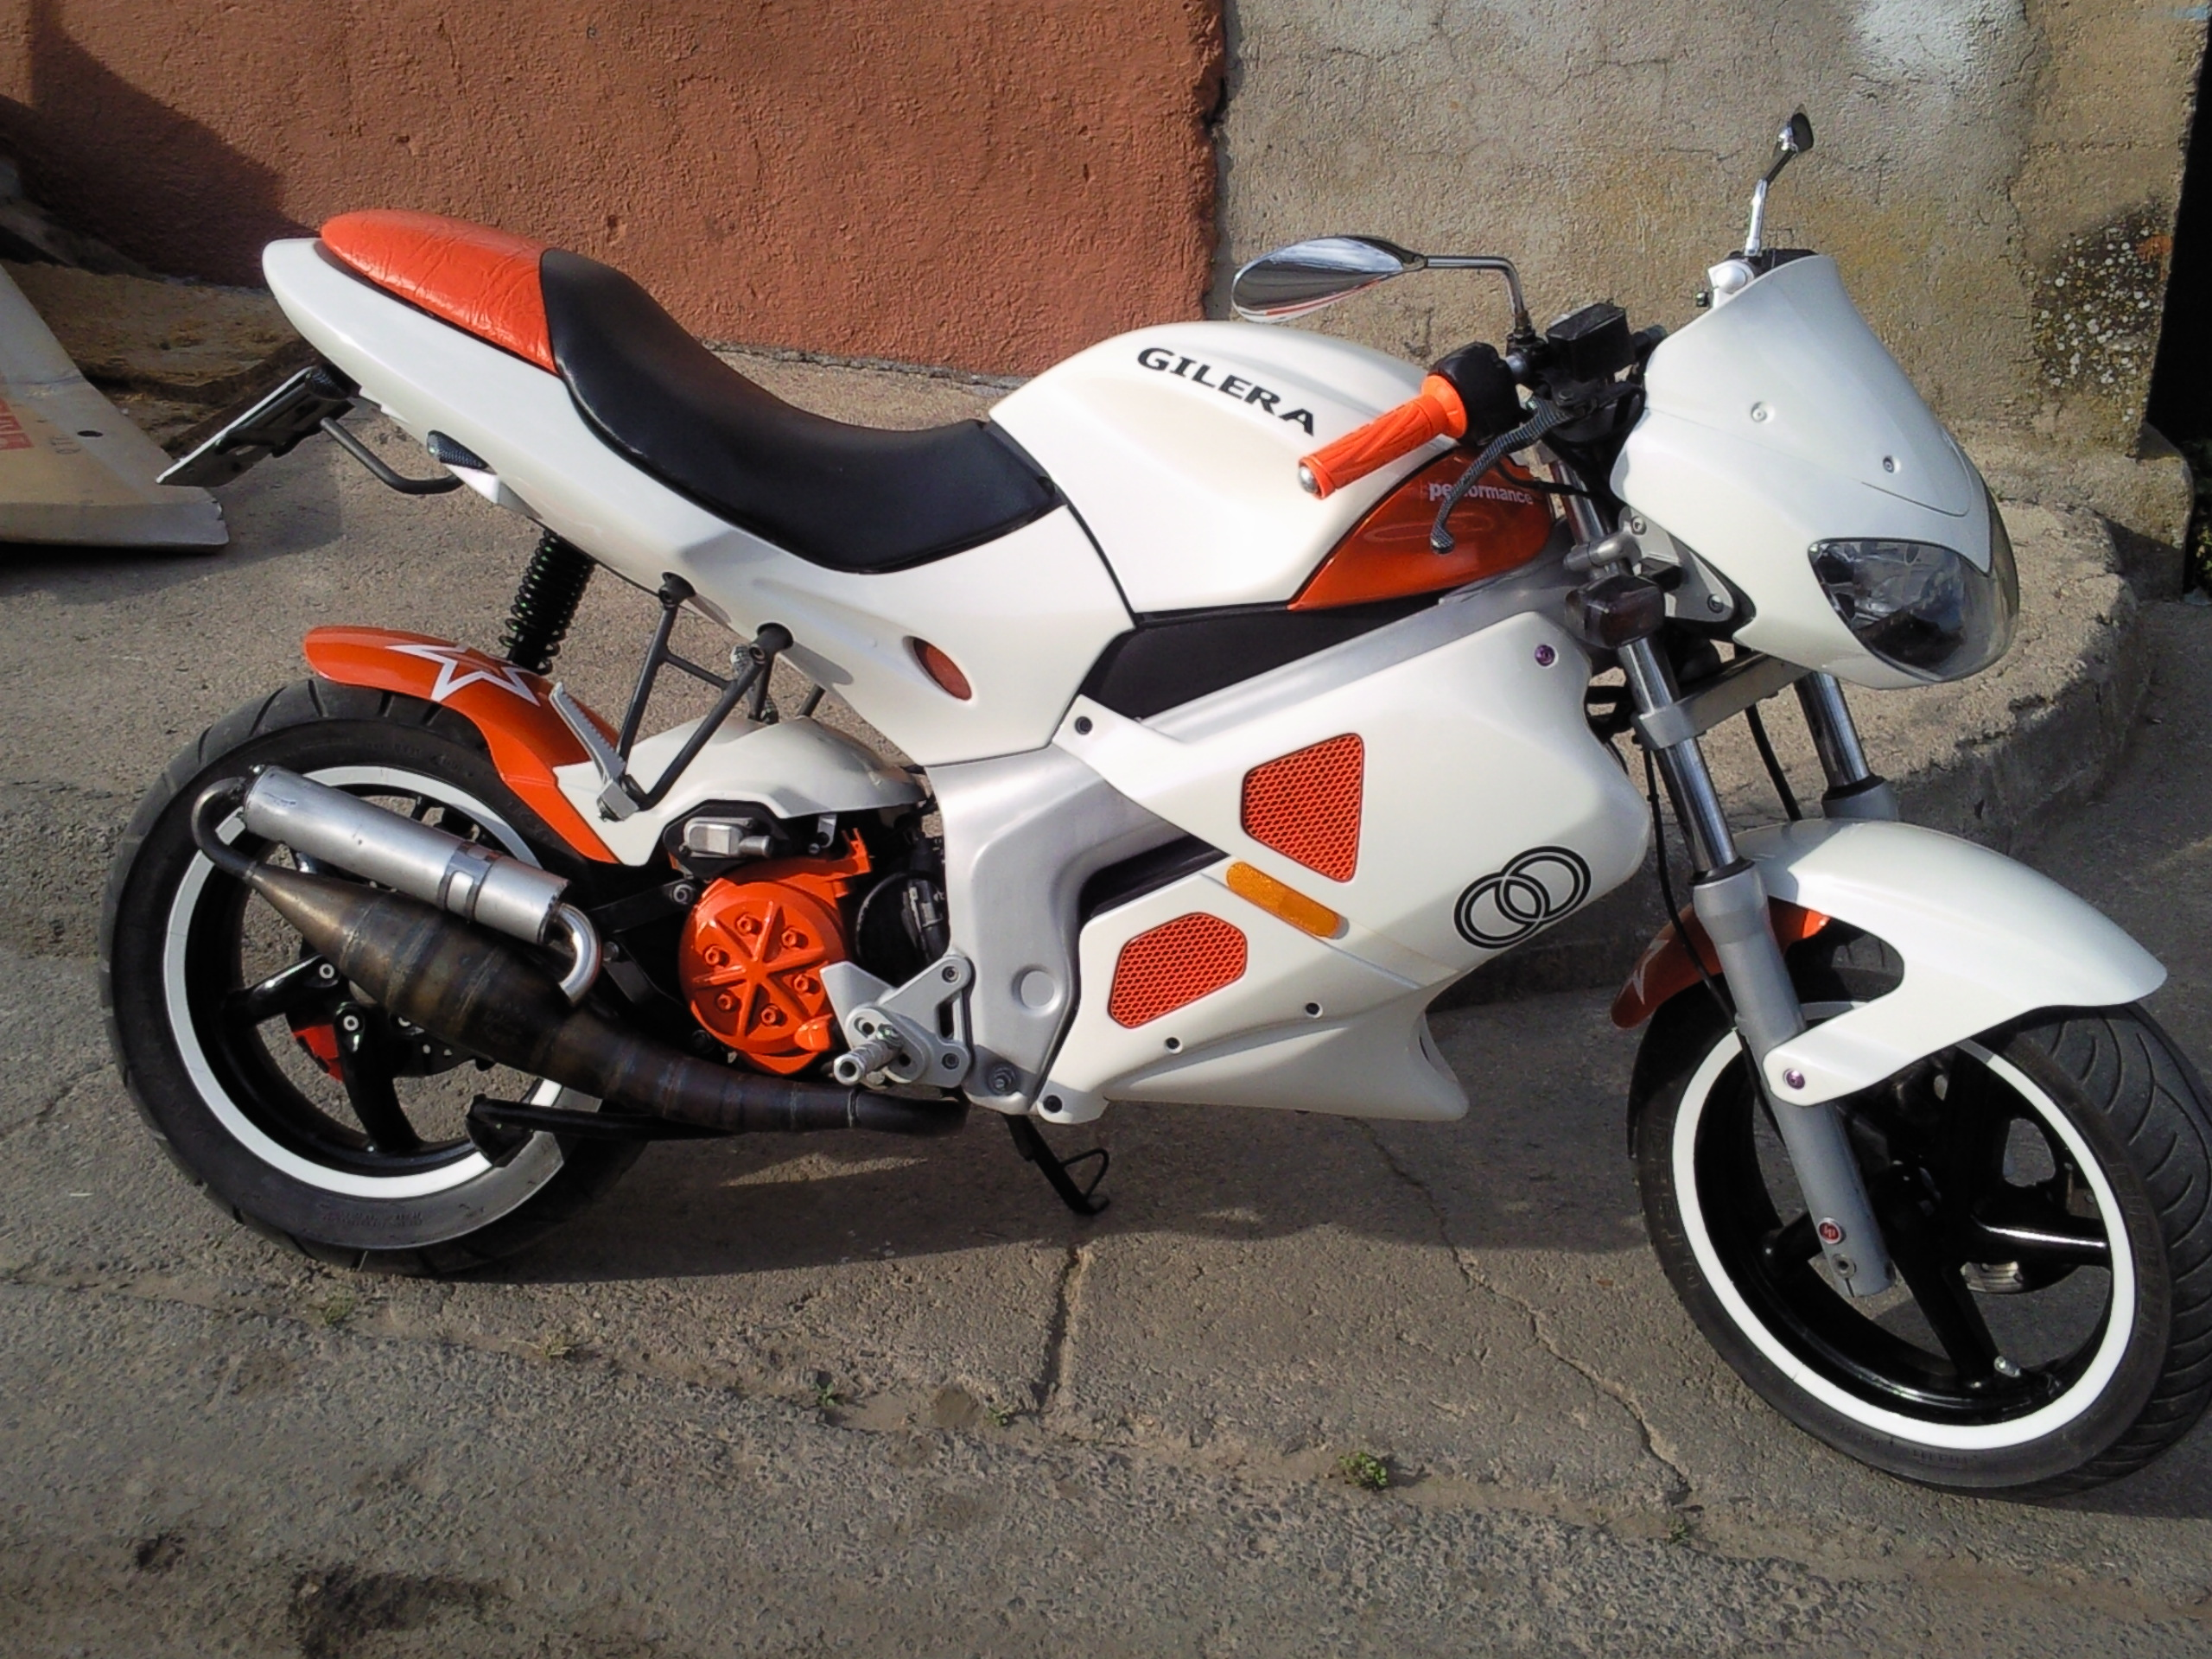 Gilera DNA 125 2001 images #73787